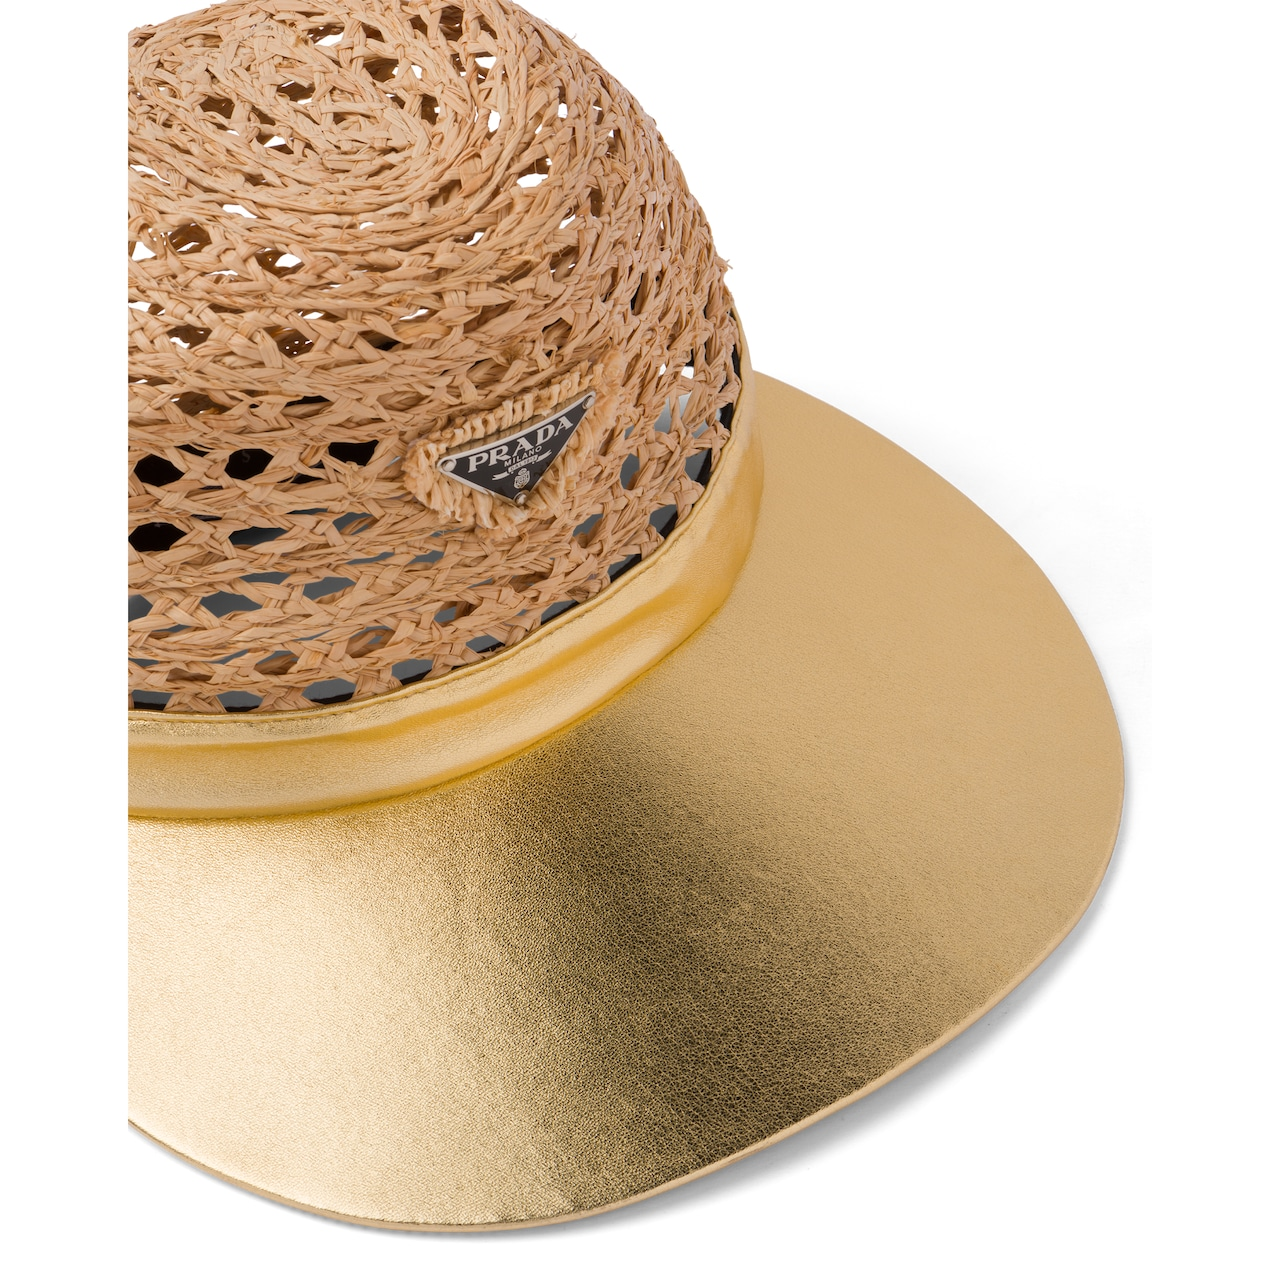 Prada Raffia and nappa leather visor hat 4